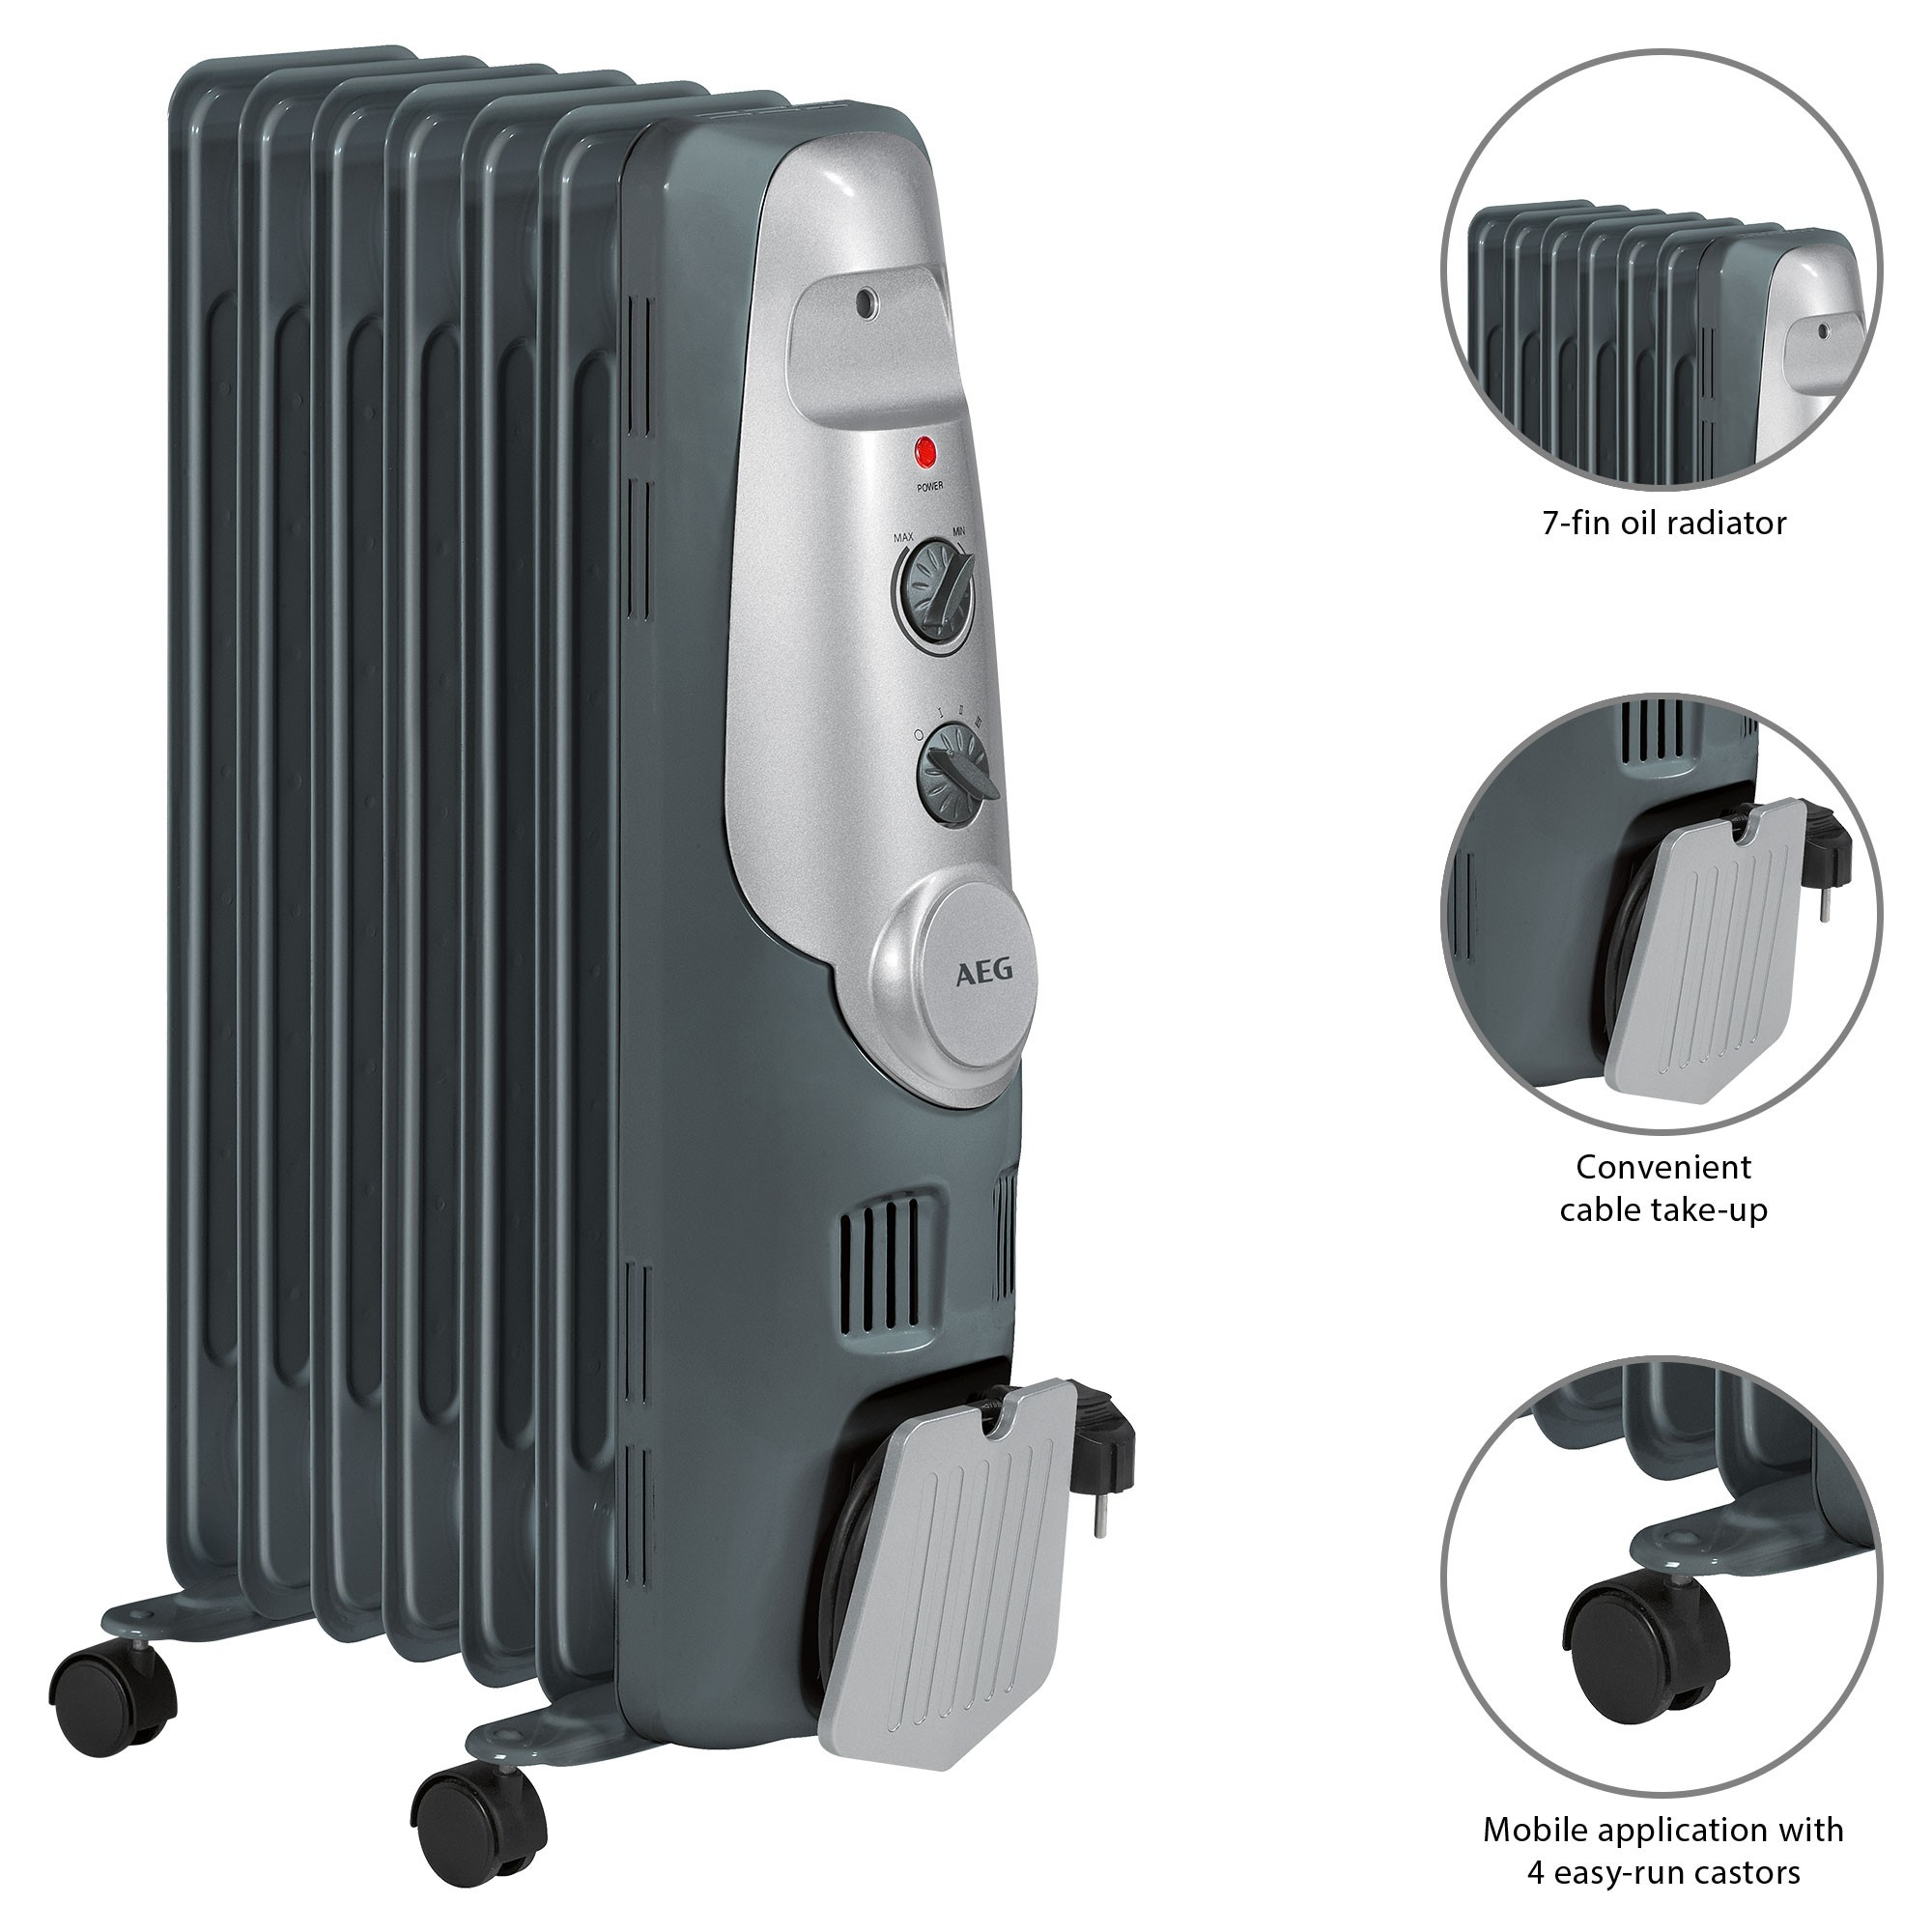 AEG RA 5520 Oil Cooler 1500W 7 Elements Thermostat 3 Tiers Power Regulatory Power For A Low Consumption